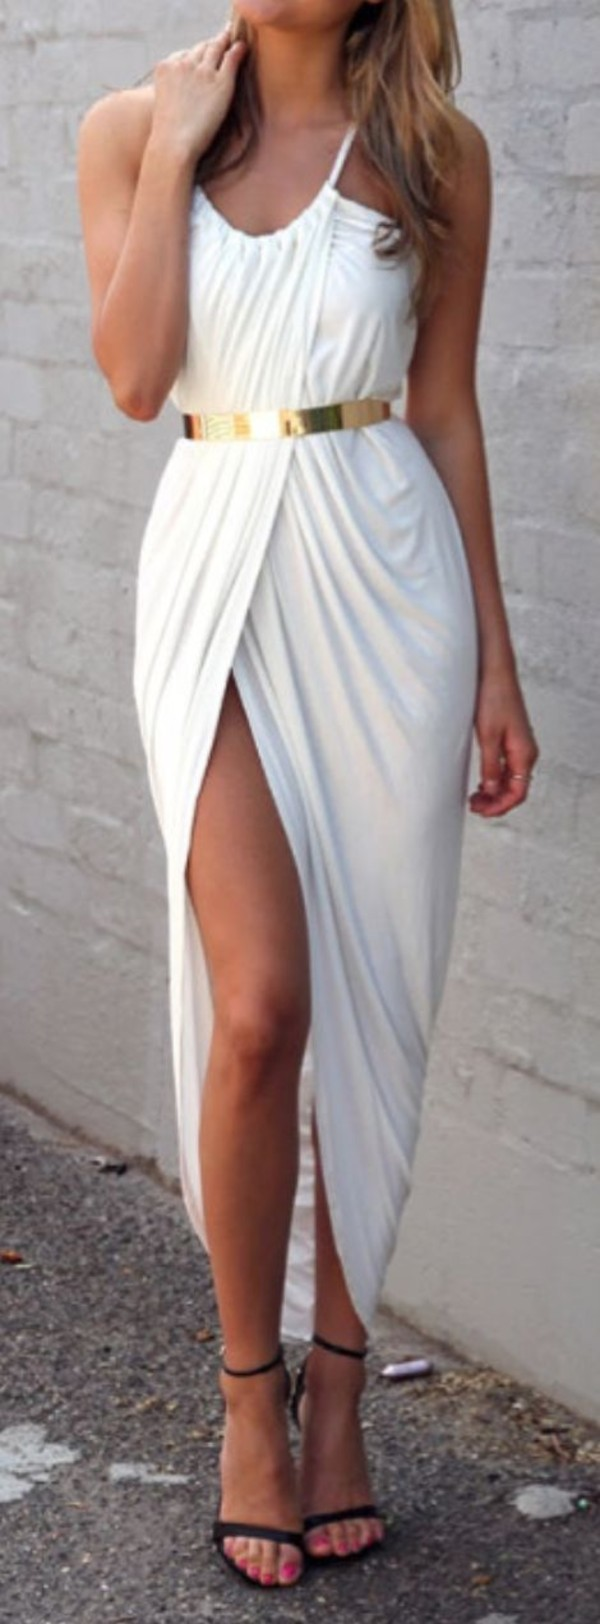 dress white white dress sexy slit blue blue dress belt greek goddess slit dress draped dress draped grecian maxi dress maxi greek gold belt maxi dress spring tuliphem tulip dress midi dress grecian dress white maxi dress grecian toga dress want love white maxi goddess dress with gold belt cute gold summer cute dress long dress white dress long cute long white long dress white long dress open leg summer dress slit white dress flowy cute class girly women classy ebonylace.storenvy asymmetrical gold sequins belt dress gold ring godess summer shorts summer outfits drapped glamgerous asymmetrical dress flowy dress sexy dress store colorful slit dress sleeveless dress leg slits gold belt dress red dress red dress with slit dress greece grecian wrap dress greek style long dress asymmetrical dress style white wrap dress front split long white dres front split  dress slit prom goddess dress white and gold dress boho dress formal dress maxi dress beautiful halo white long dress belted dress